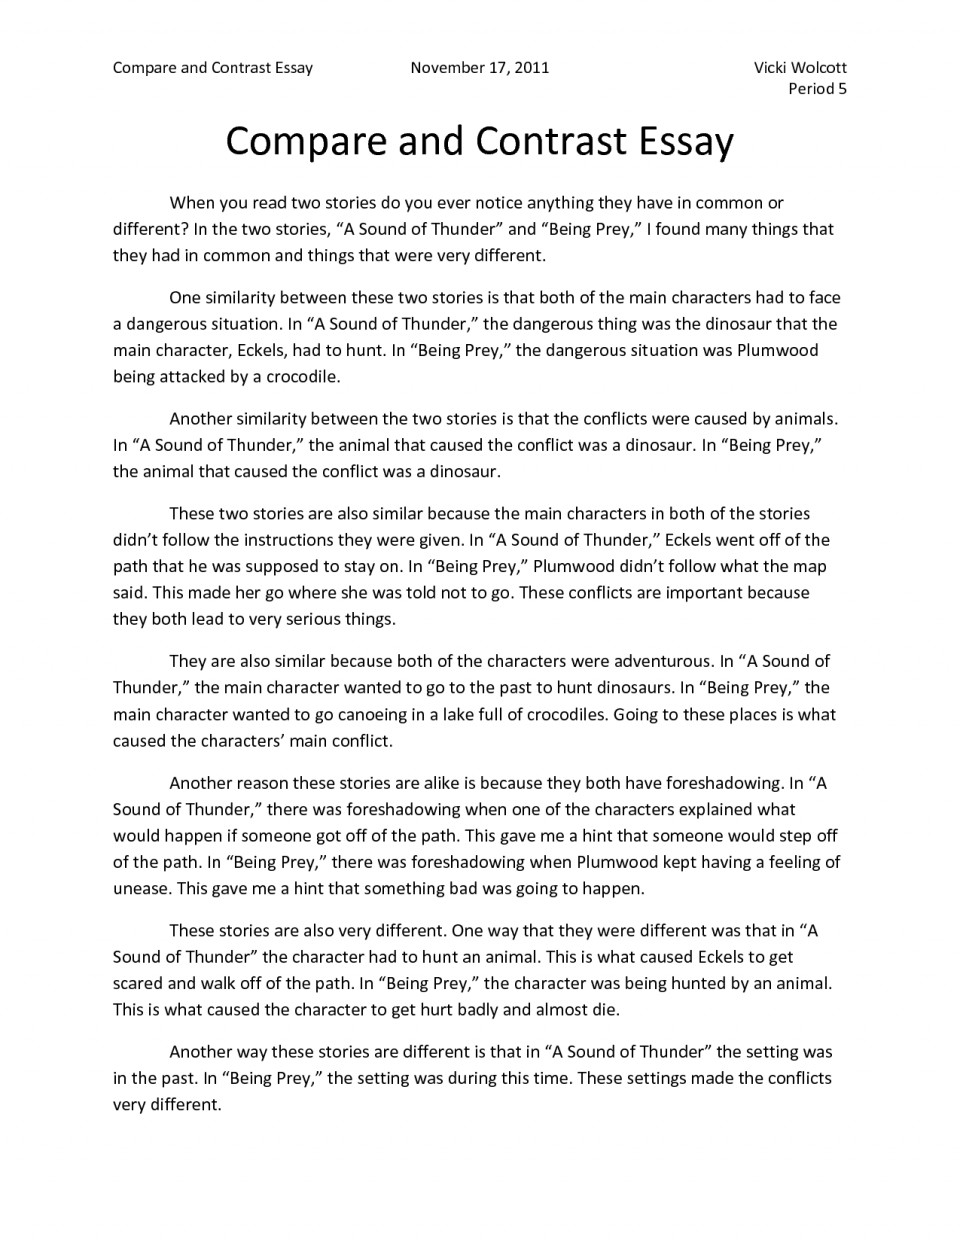 004 Essay Example Compare And Contrast Gallery Template Drawing Art Throughout College Examples Introduction Question Scholarship Free Edexcel Conclusion Frightening Outline Block Method Ideas High School For Middle 960